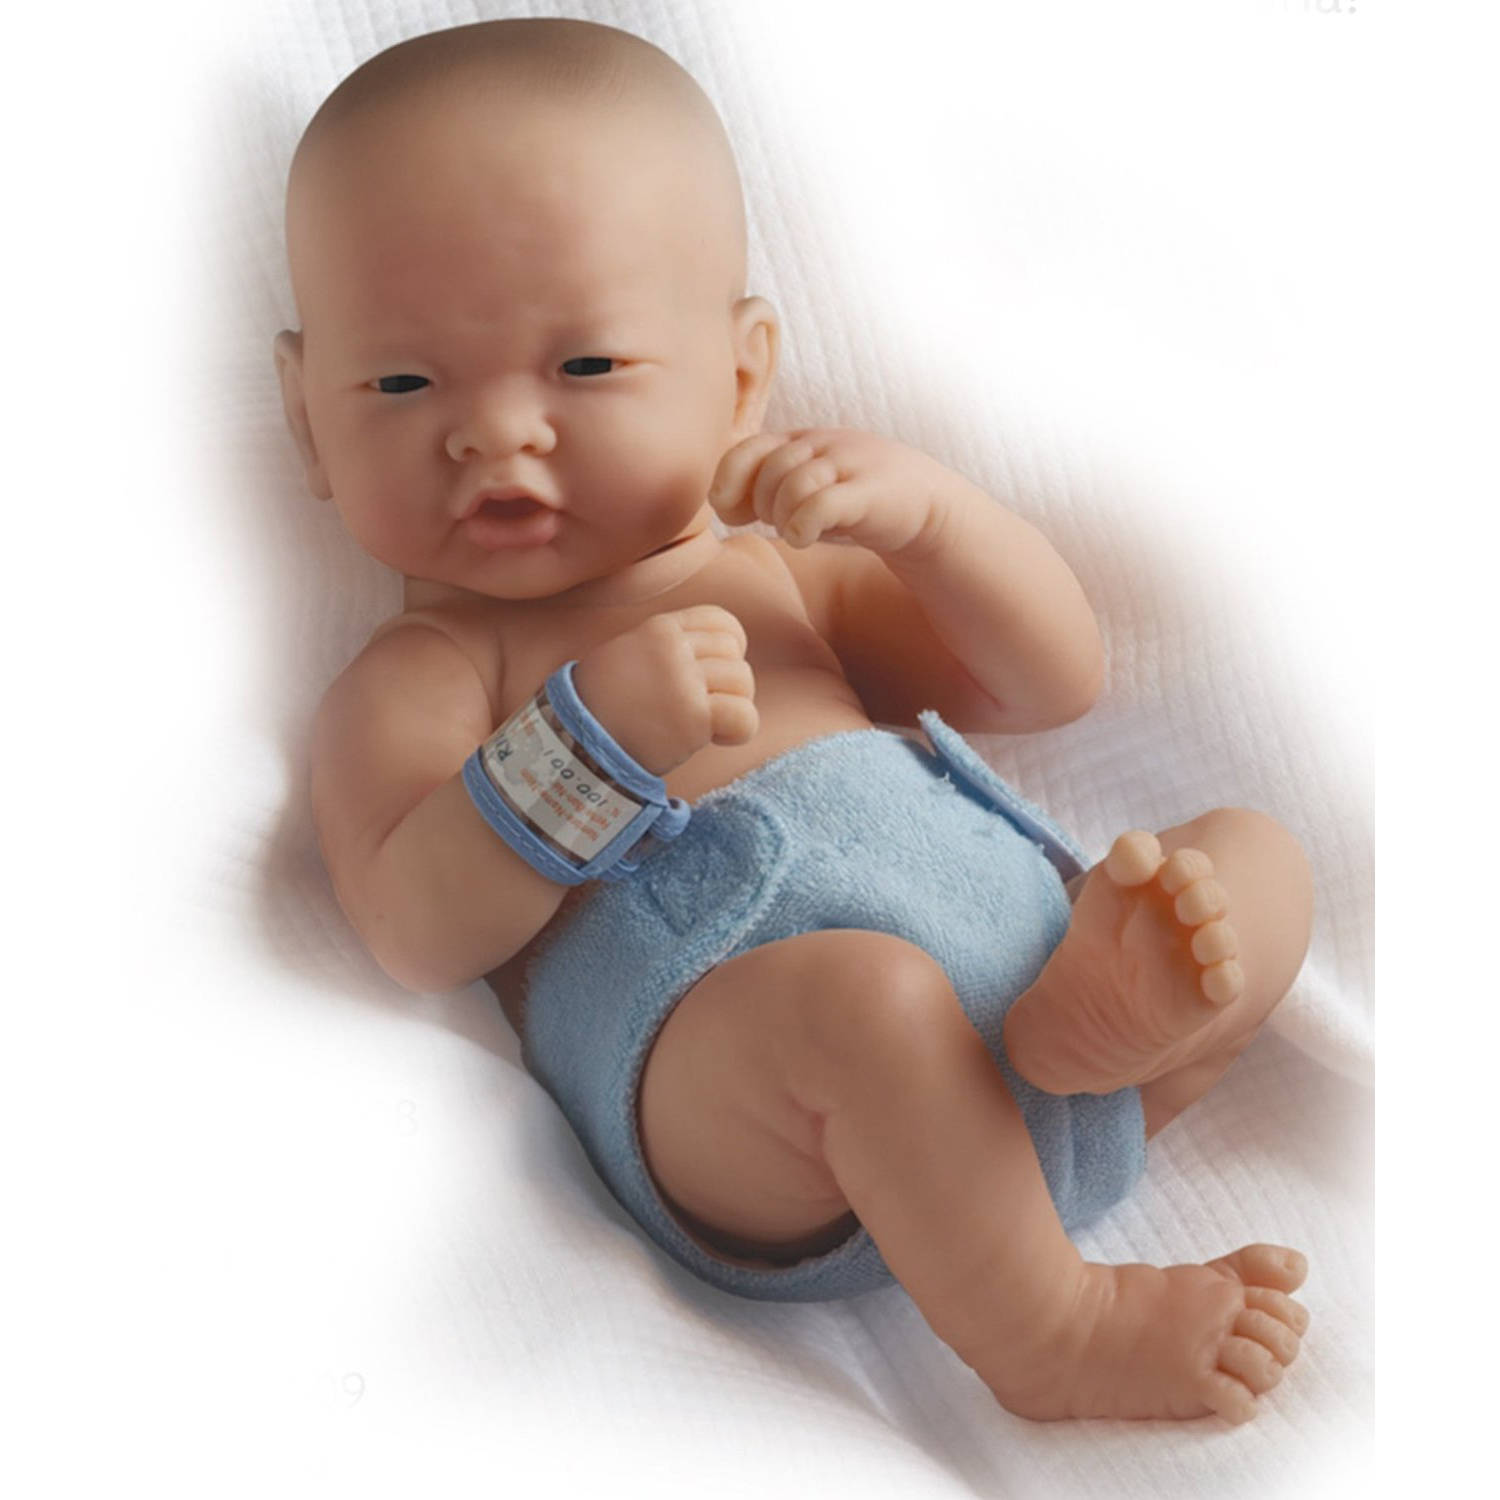 La Newborn 15 All Vinyl Life Like First Day Baby Doll Real Boy